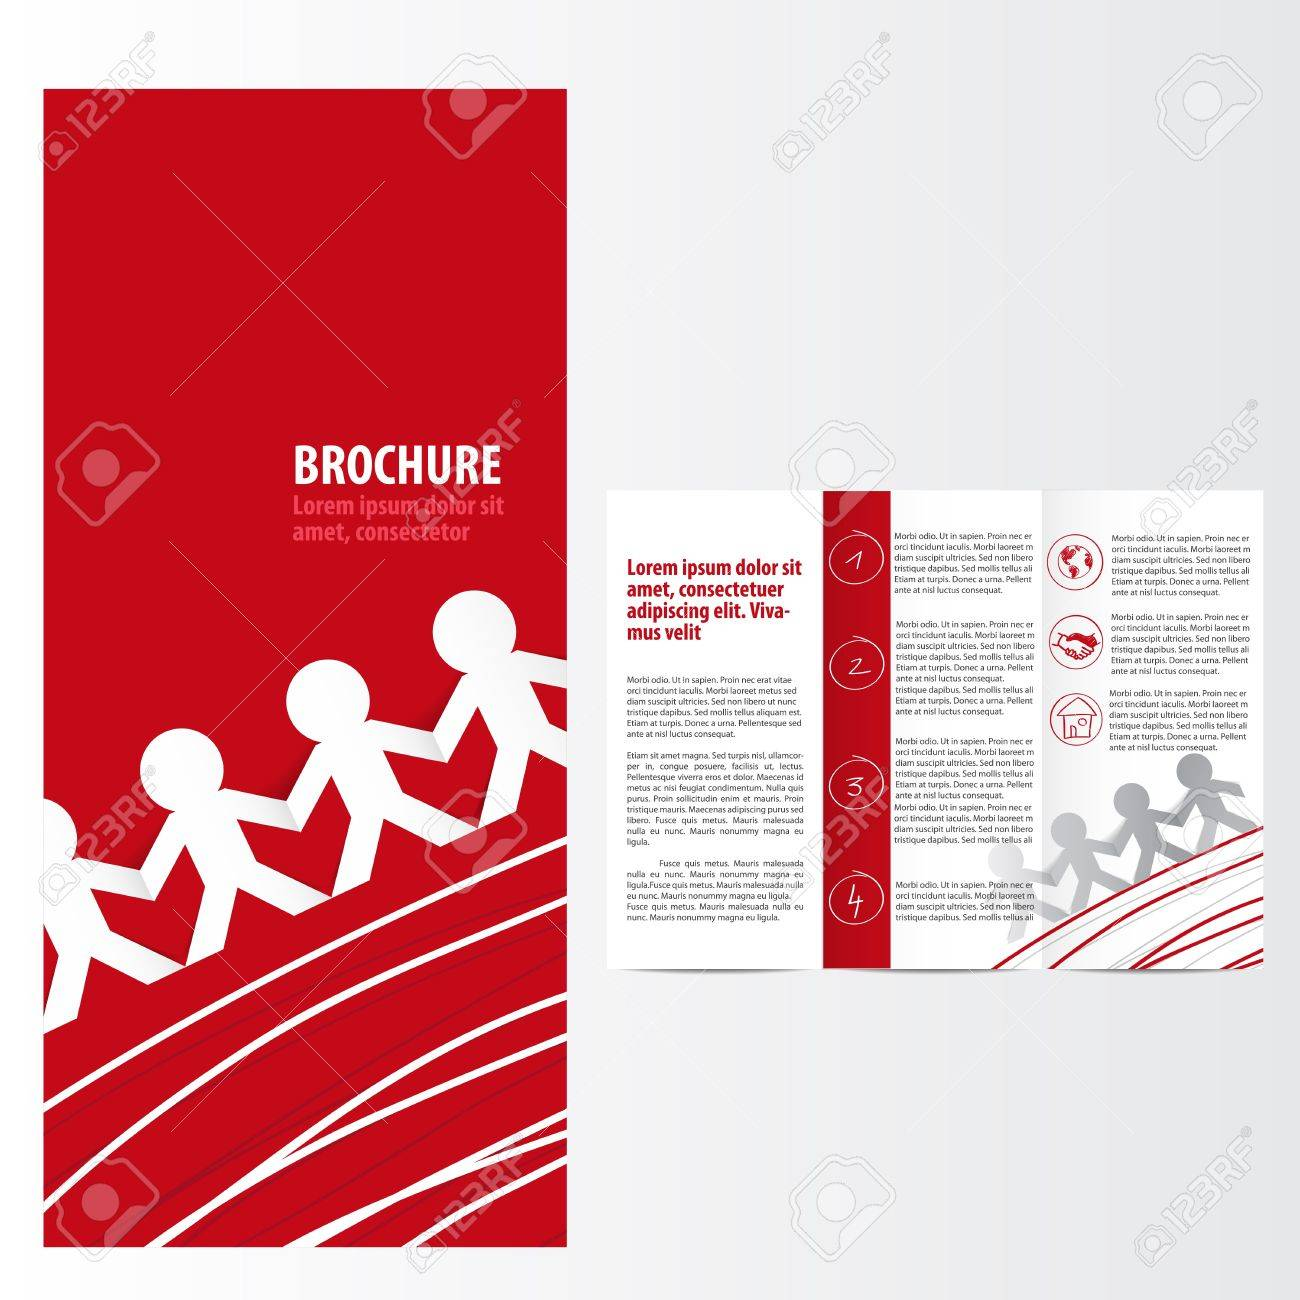 Red Brochure Template Royalty Free Cliparts, Vectors, And Stock ...